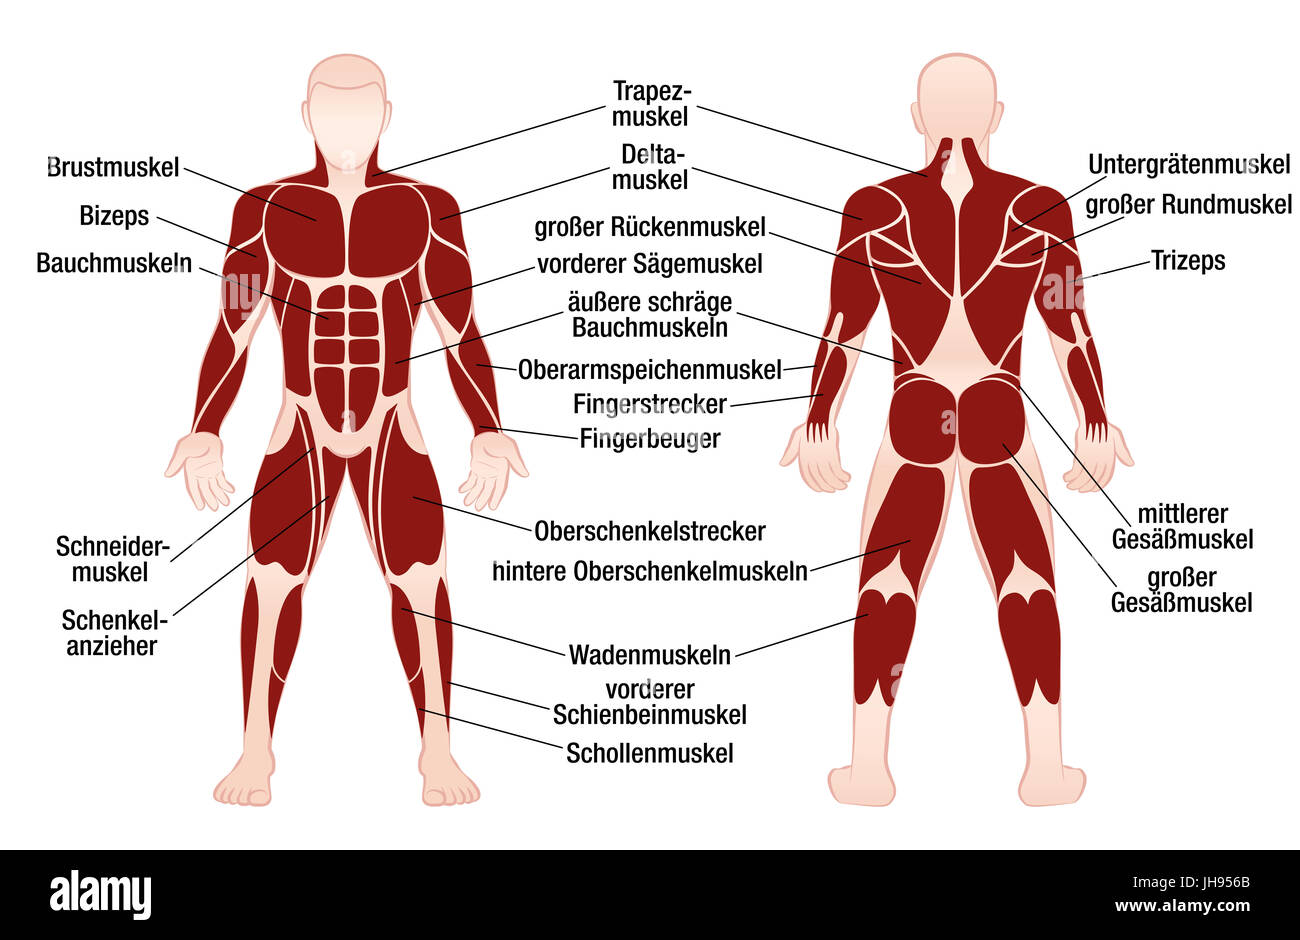 Muscle chart with german description of the most important muscles ...